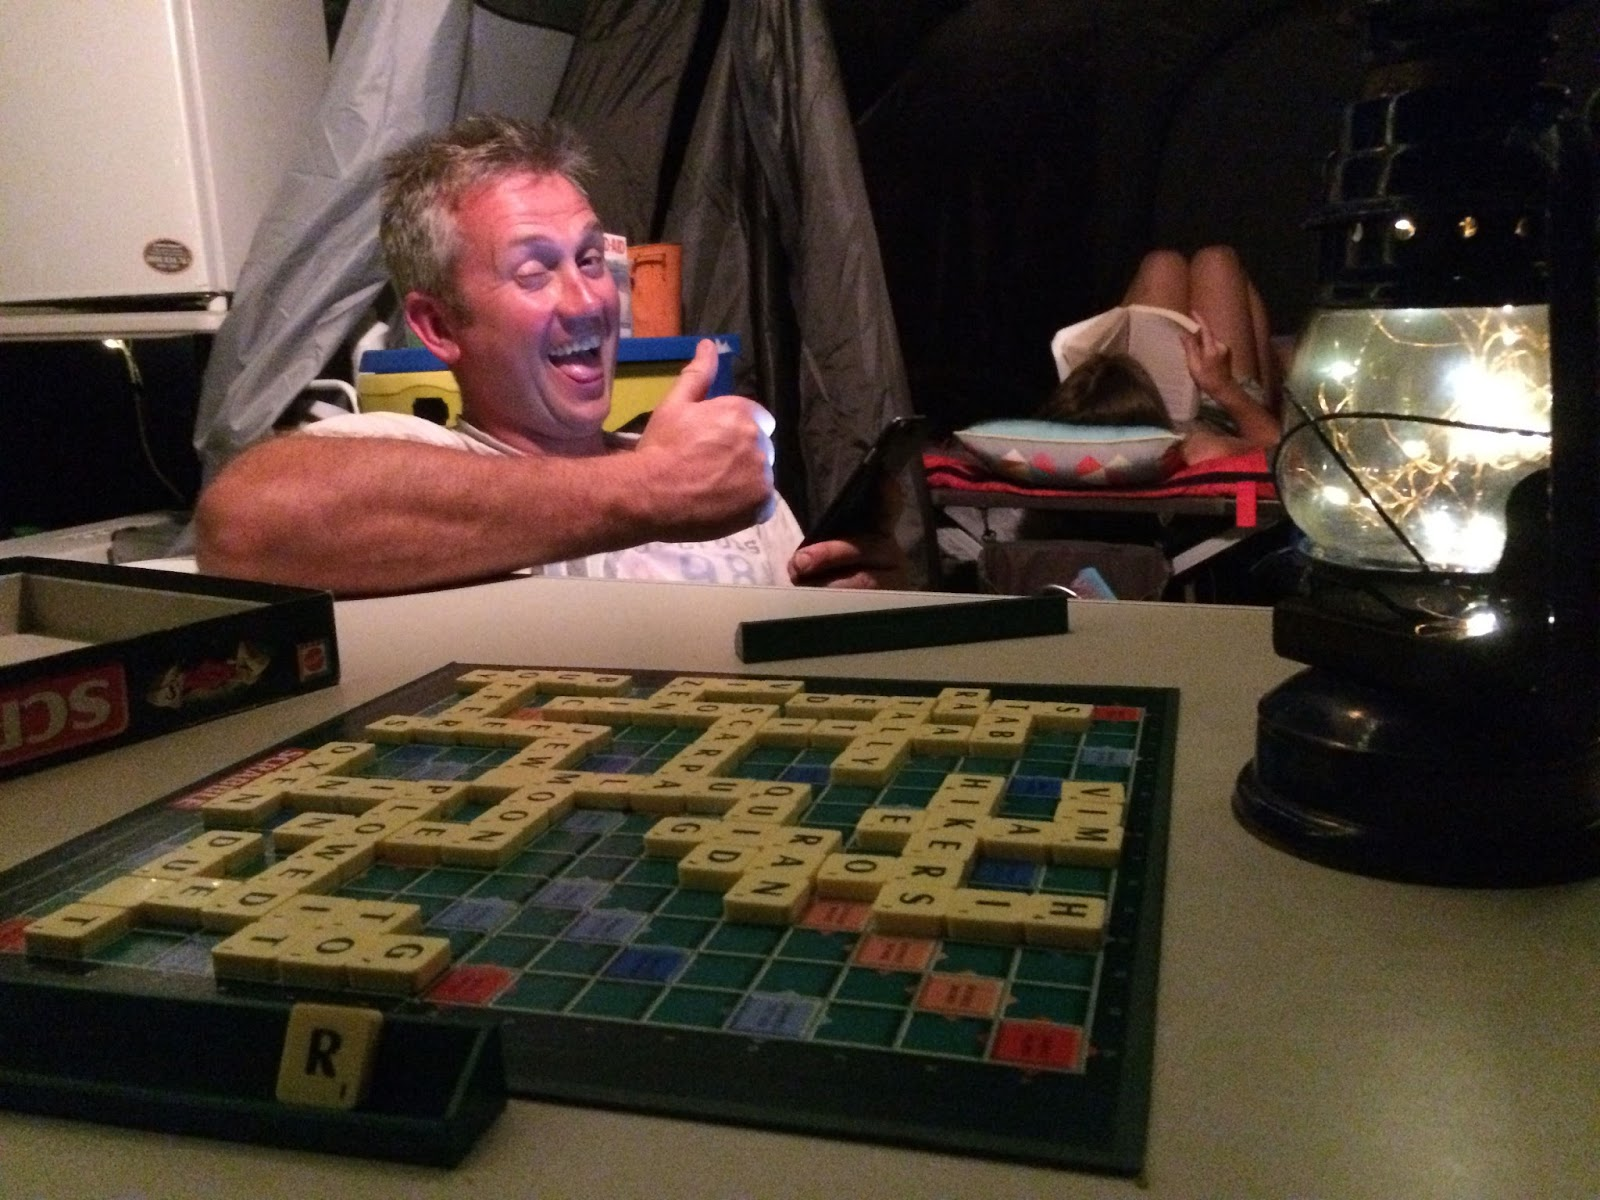 SHOCK RESULT! Geordie Grylls wins at Scrabble!